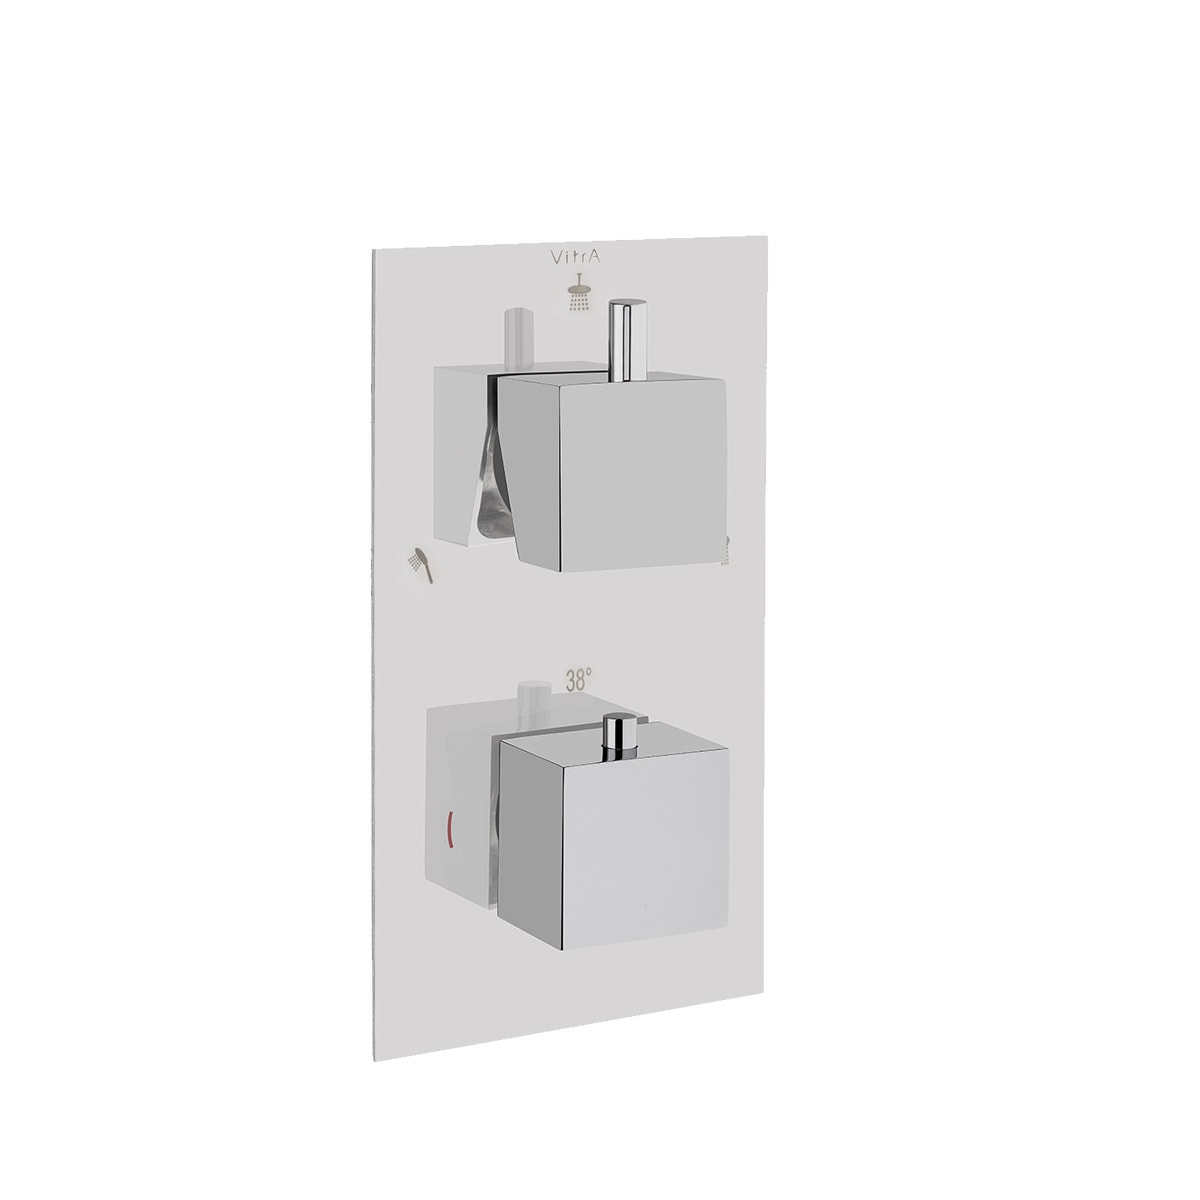 AquaHeat S2 Built-in Bath/Shower mixer (3-way diverter)